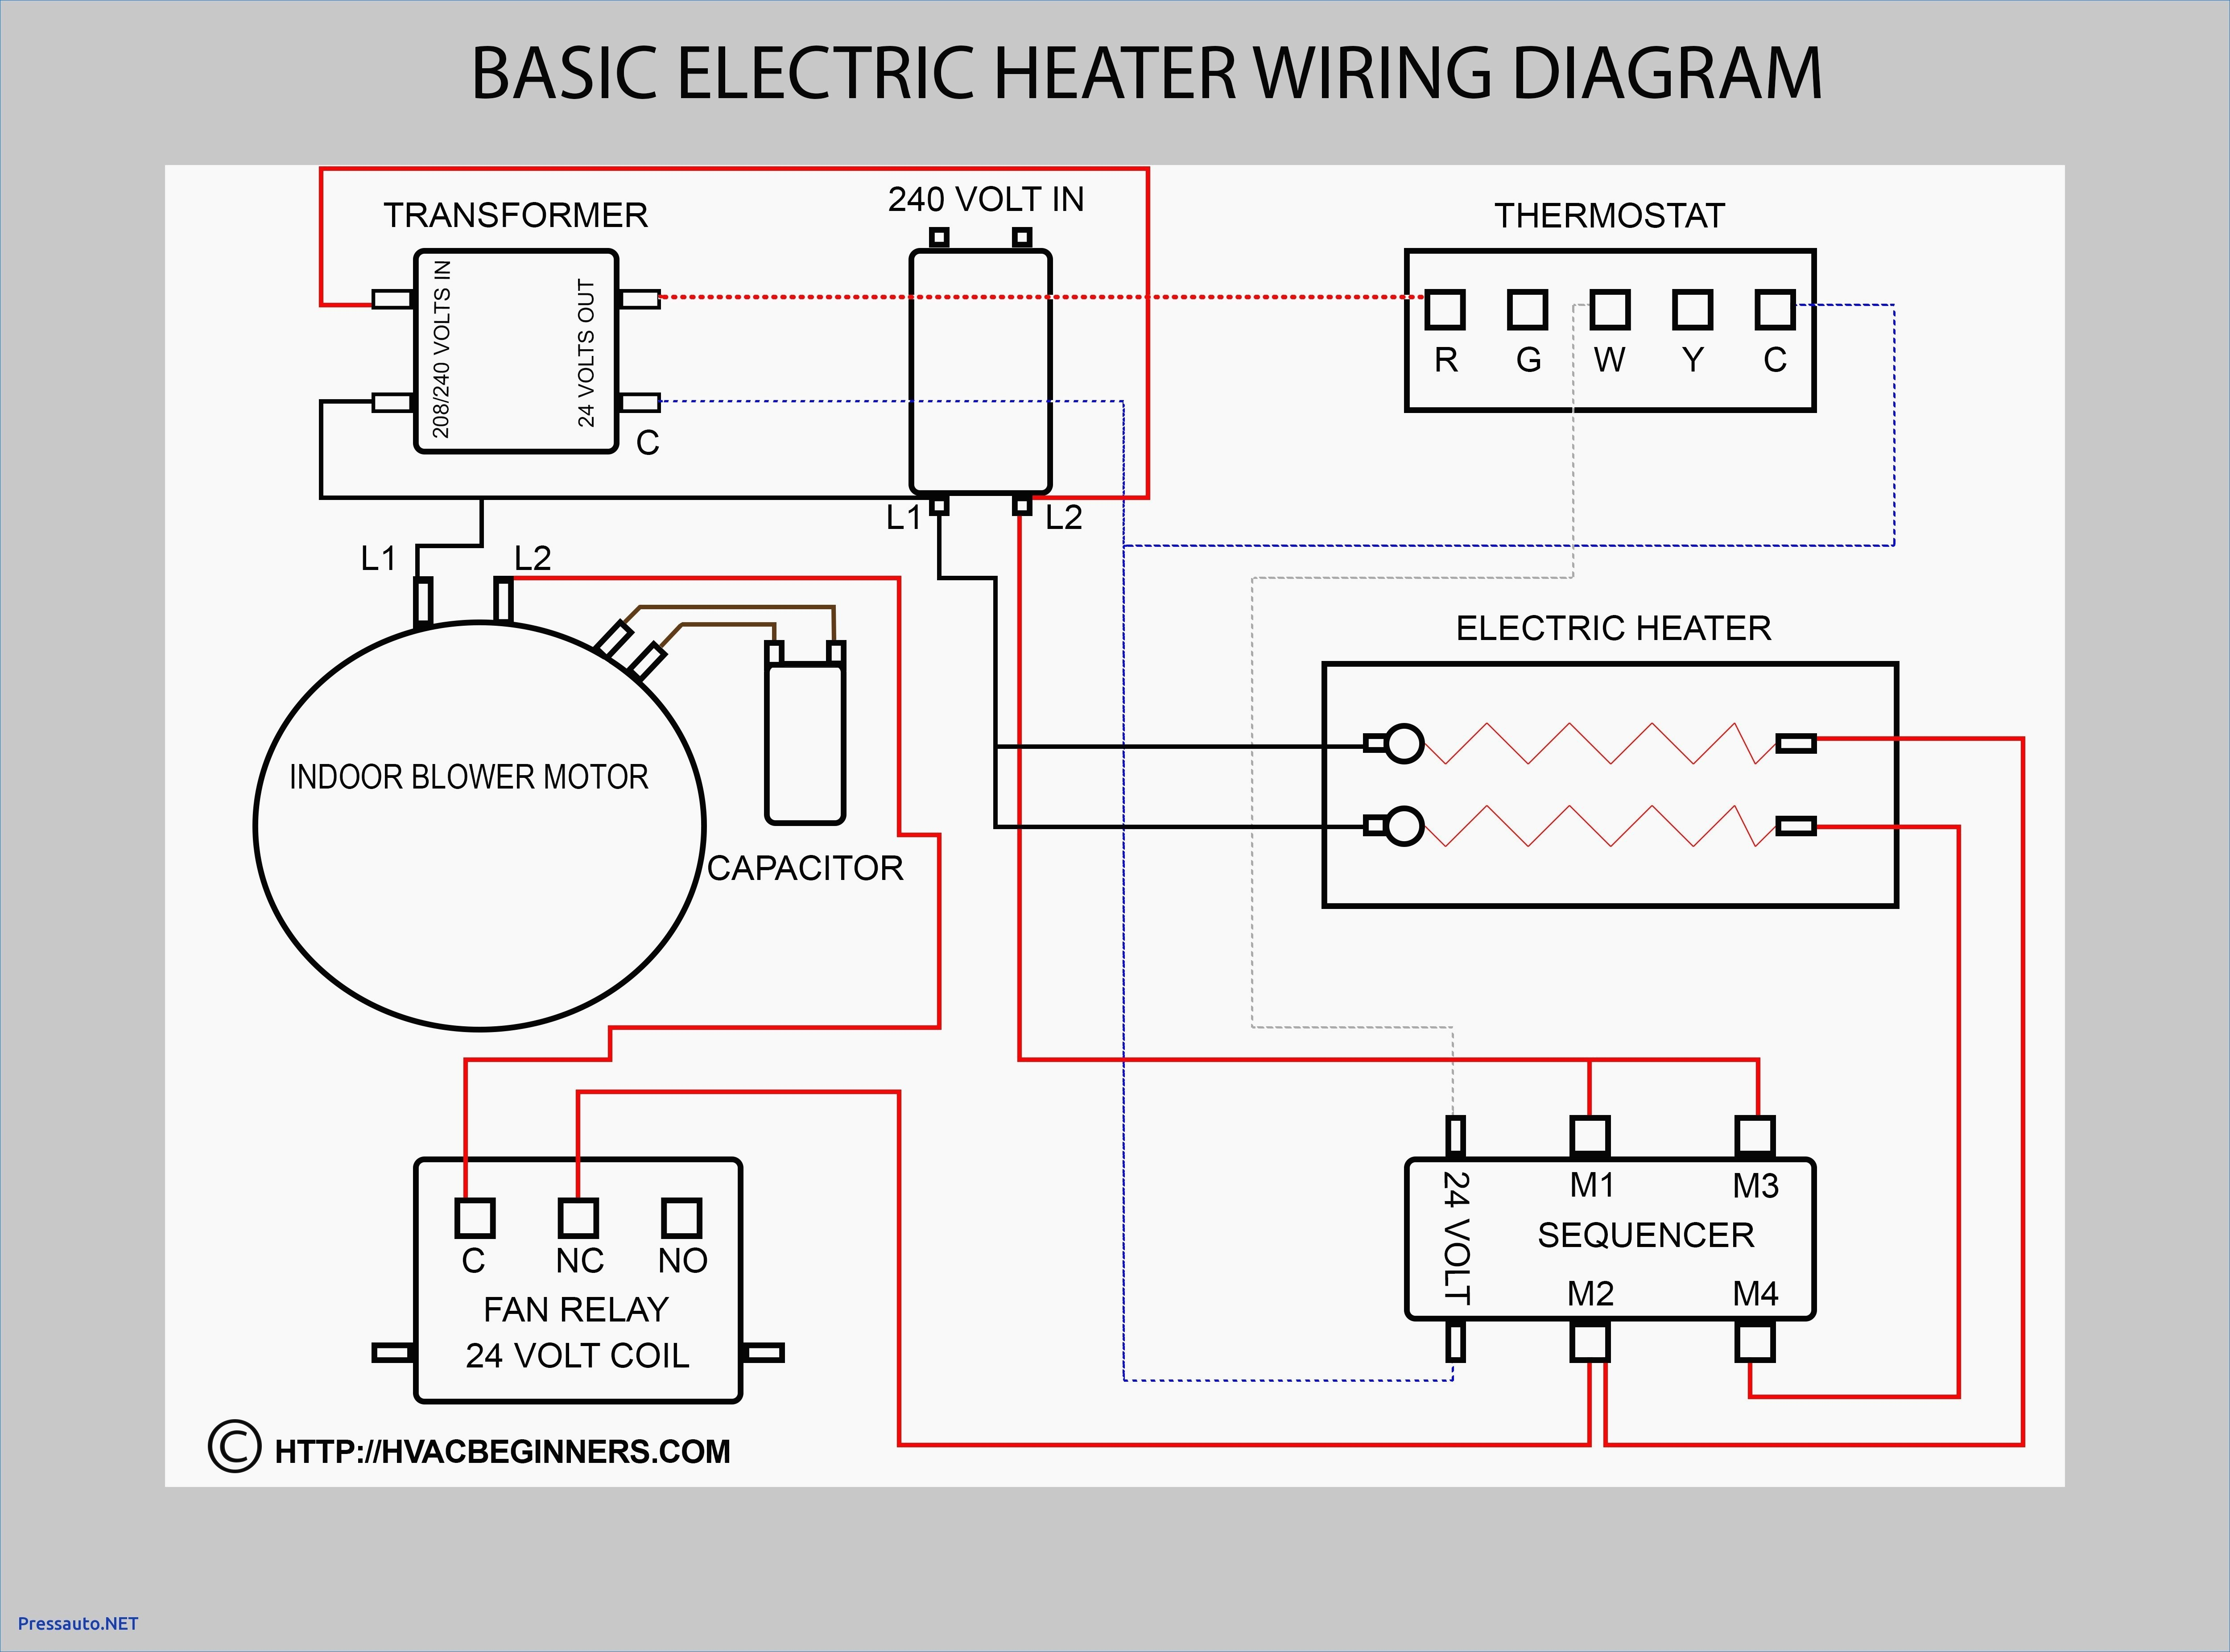 Goodman gas furnace wiring diagram of residential central wiring goodman package unit schematic wiring data rh faser co basic gas furnace wiring diagram basic gas furnace wiring diagram asfbconference2016 Gallery